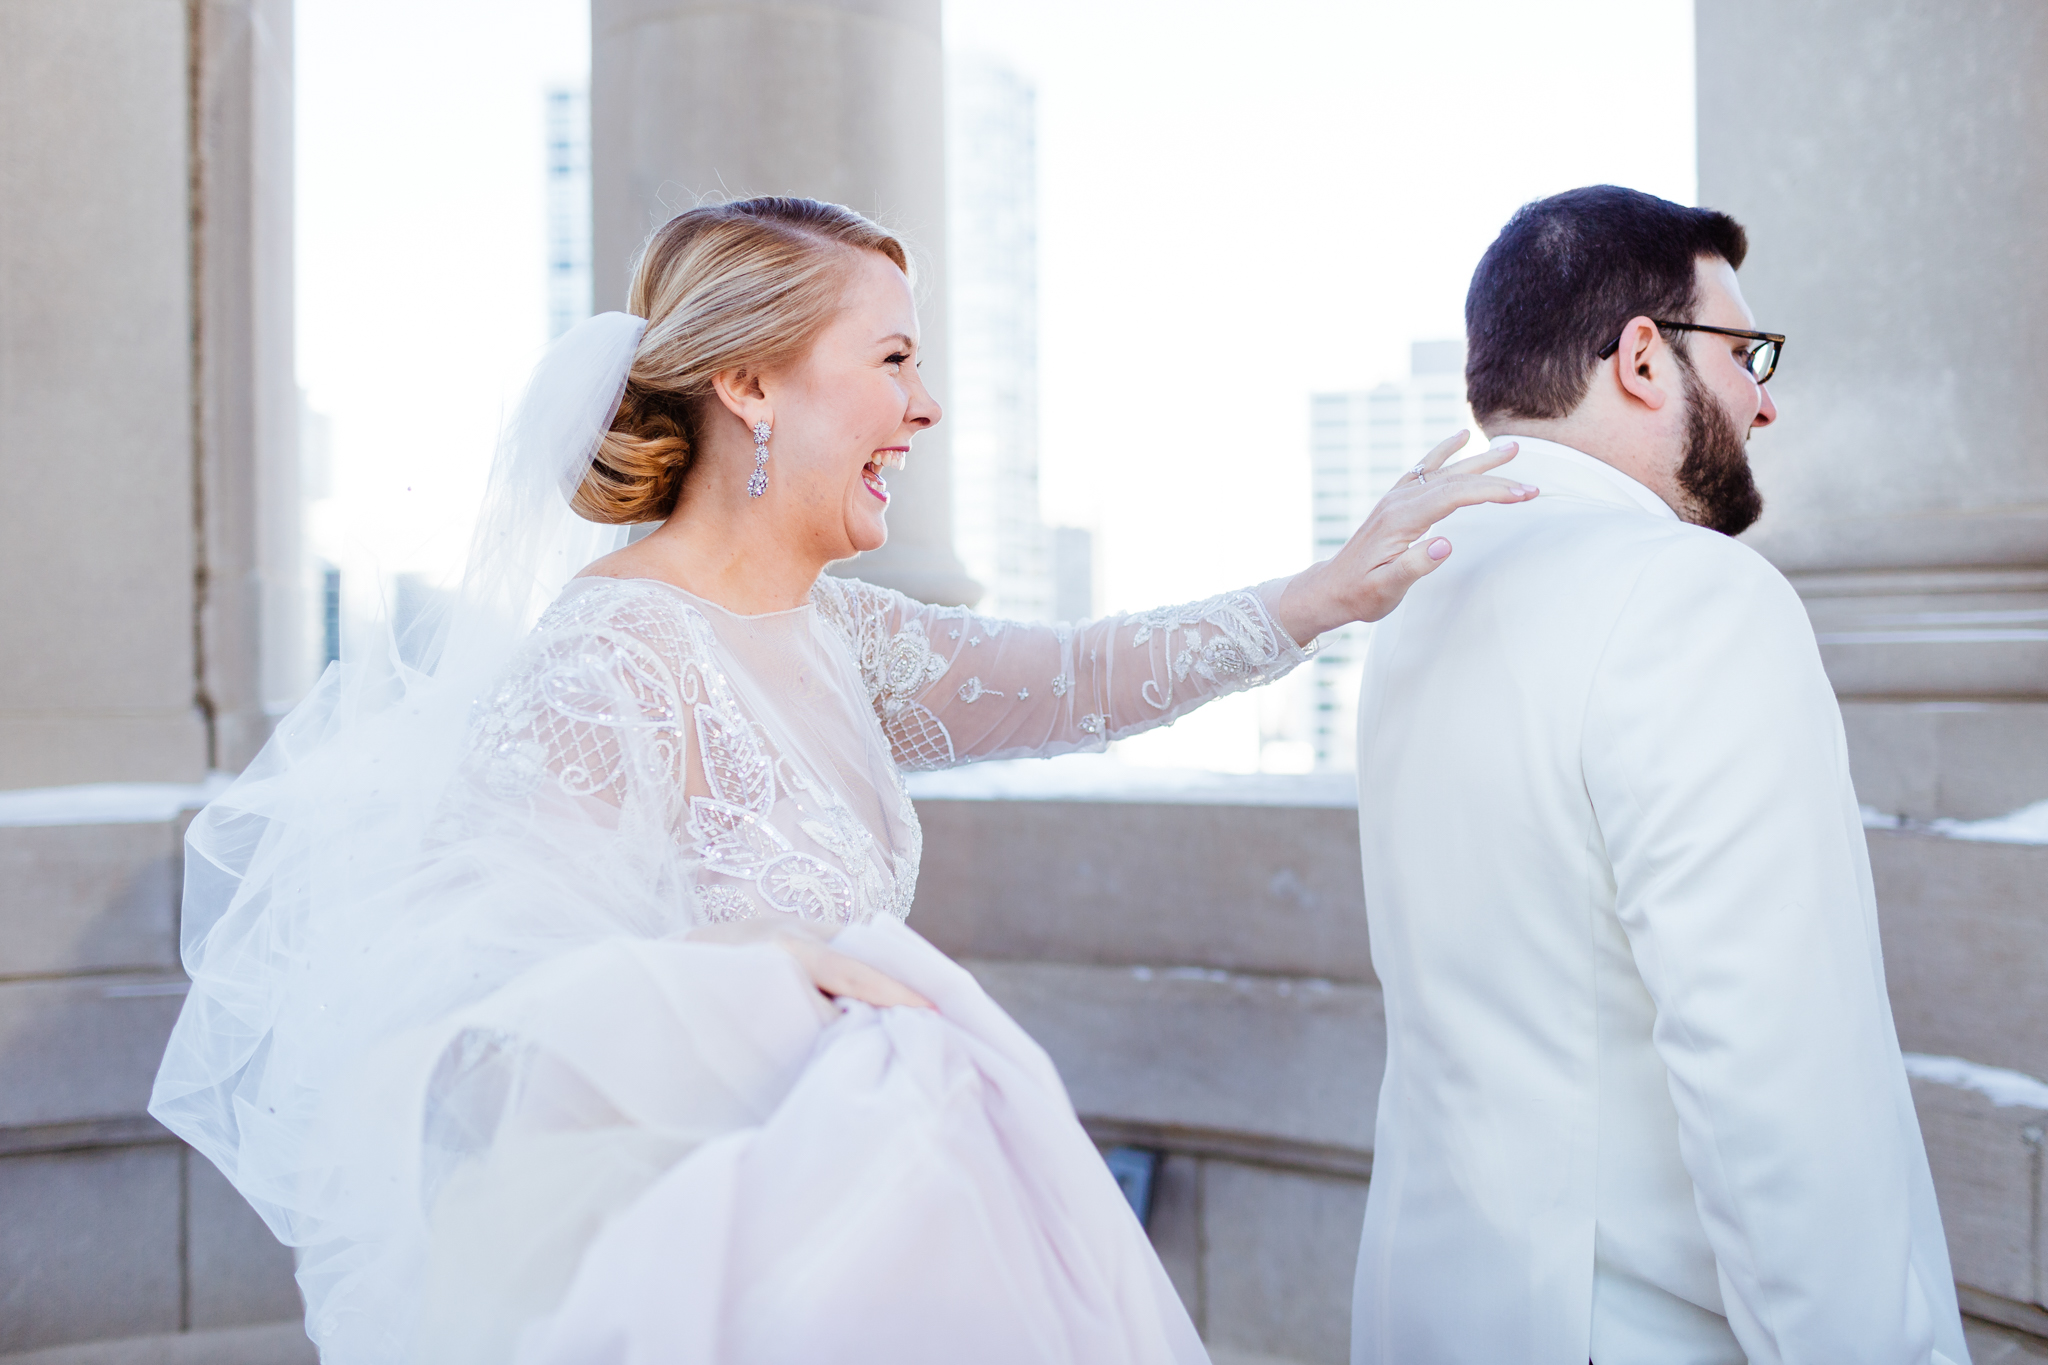 Bride tapping on groom's shoulder during first look